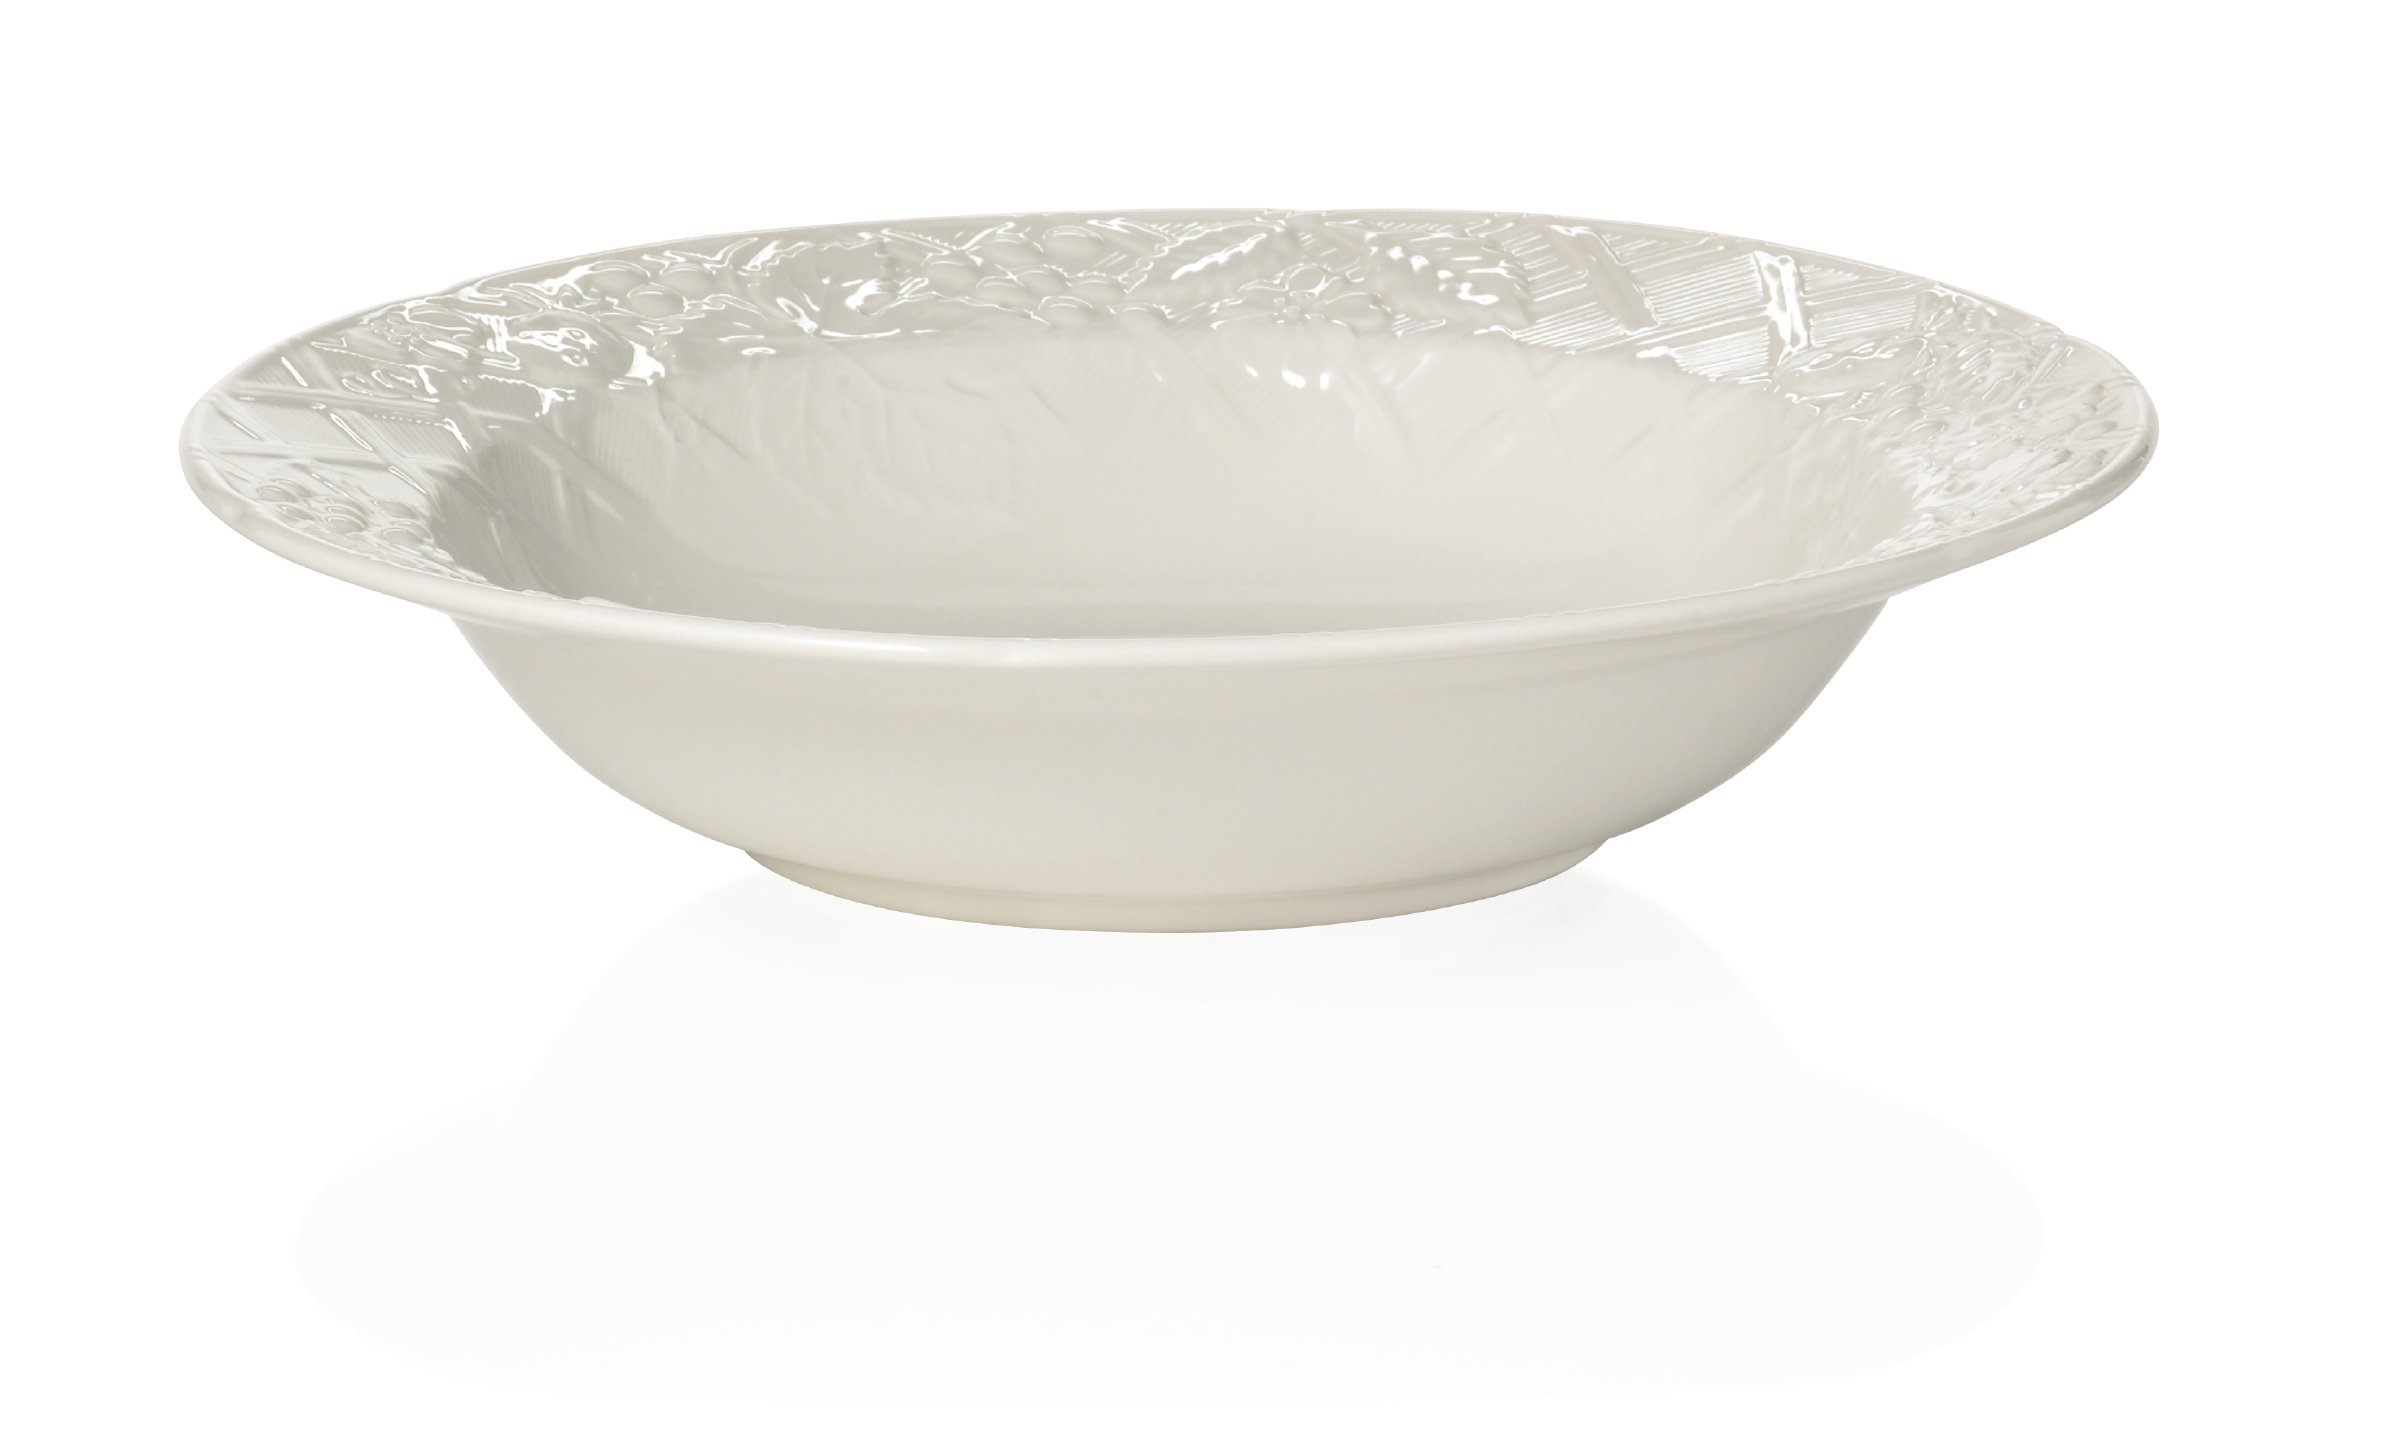 Mikasa English Countryside Round Vegetable Bowl